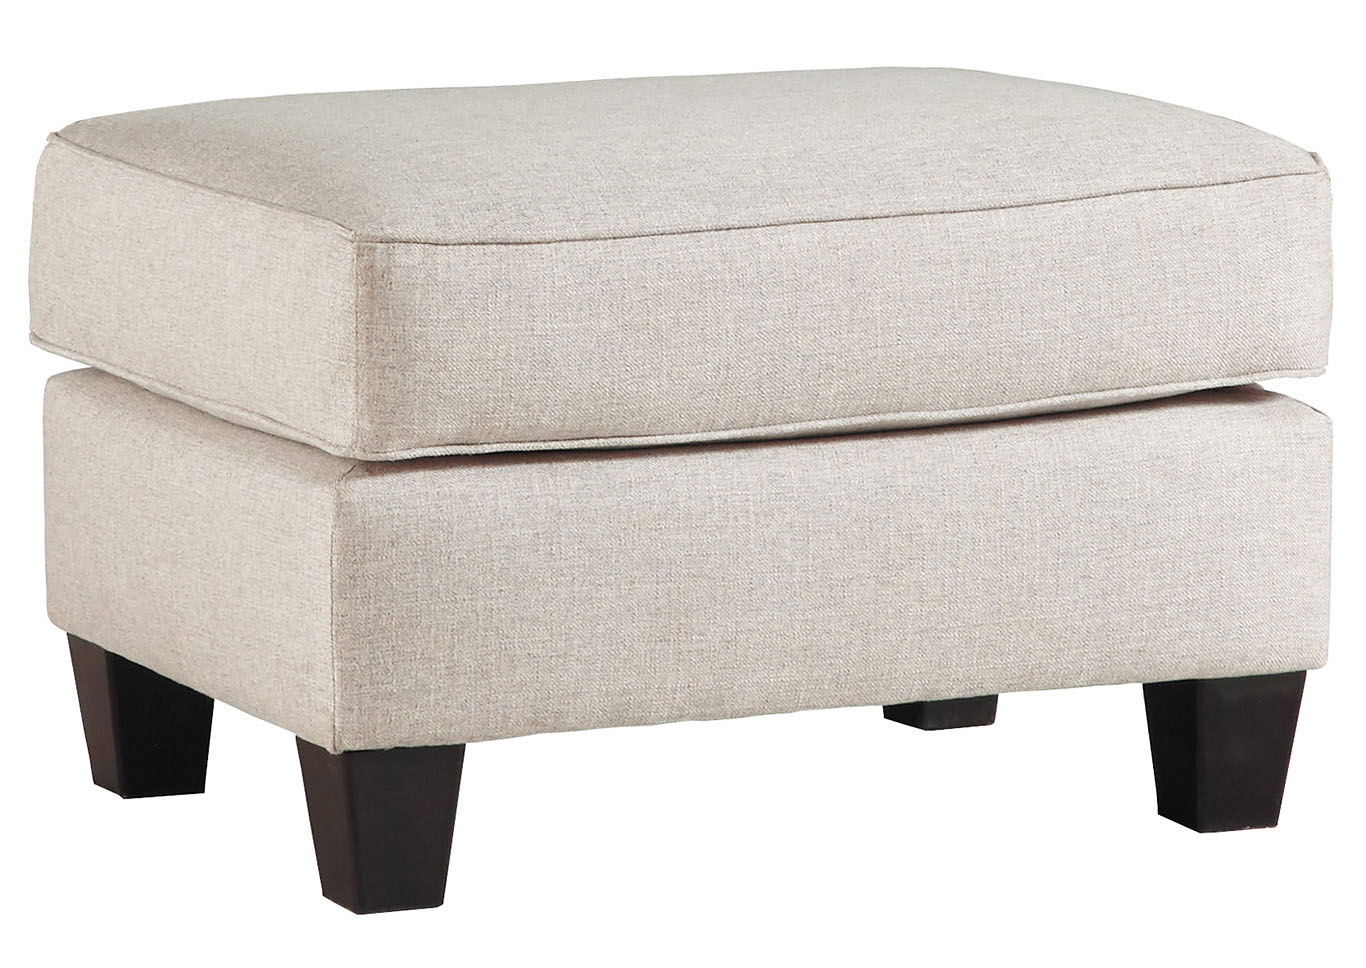 Marrero Fog Ottoman,Signature Design By Ashley